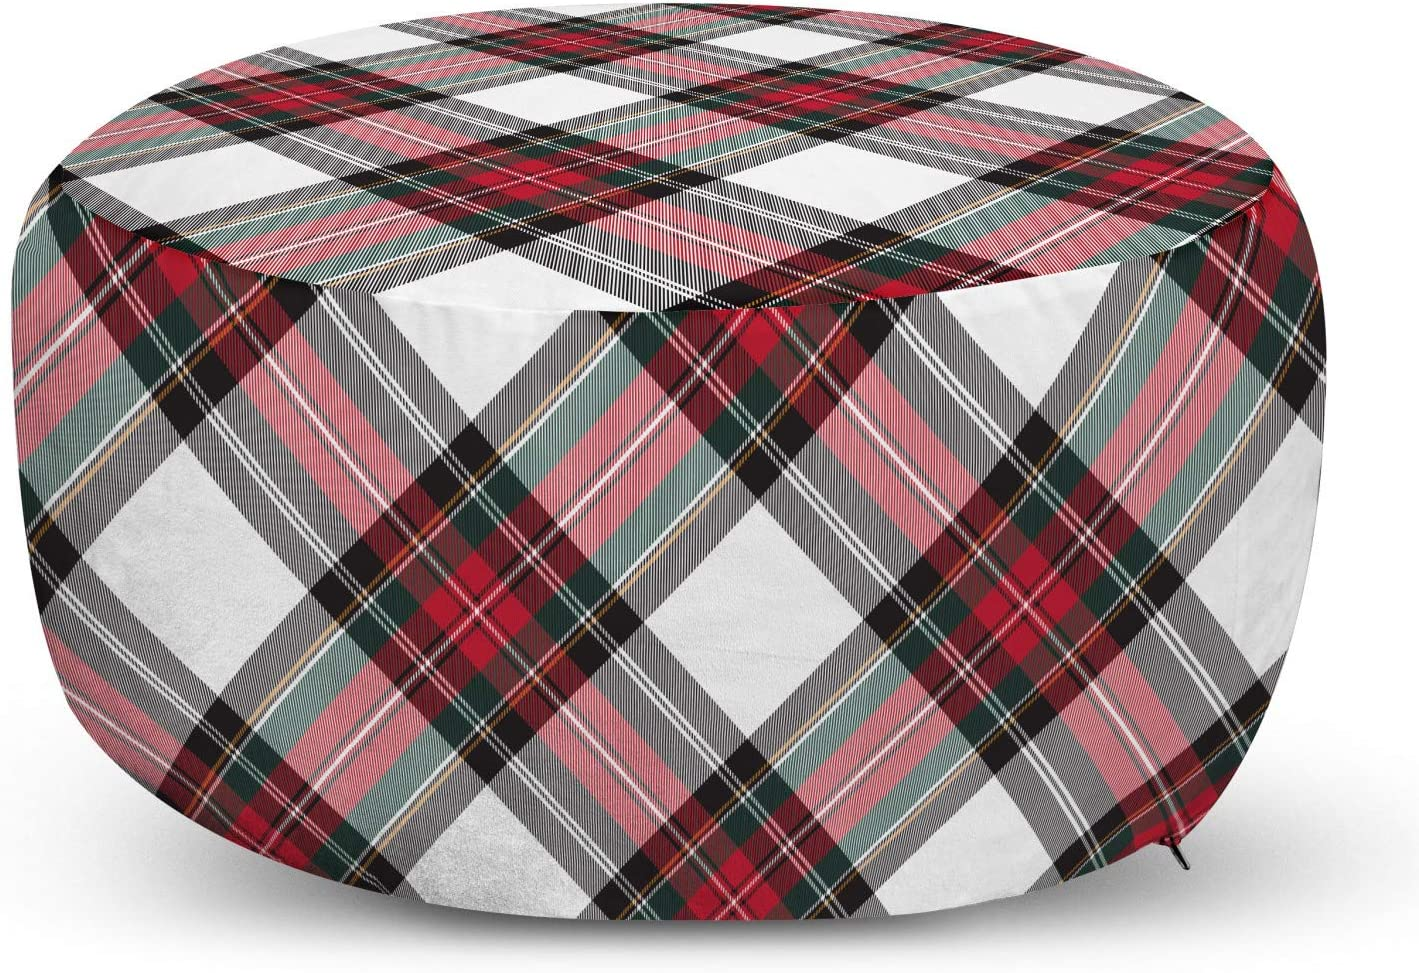 NEW before Max 47% OFF selling Ambesonne Tartan Pouf Cover with Traditional Plaid Zipper